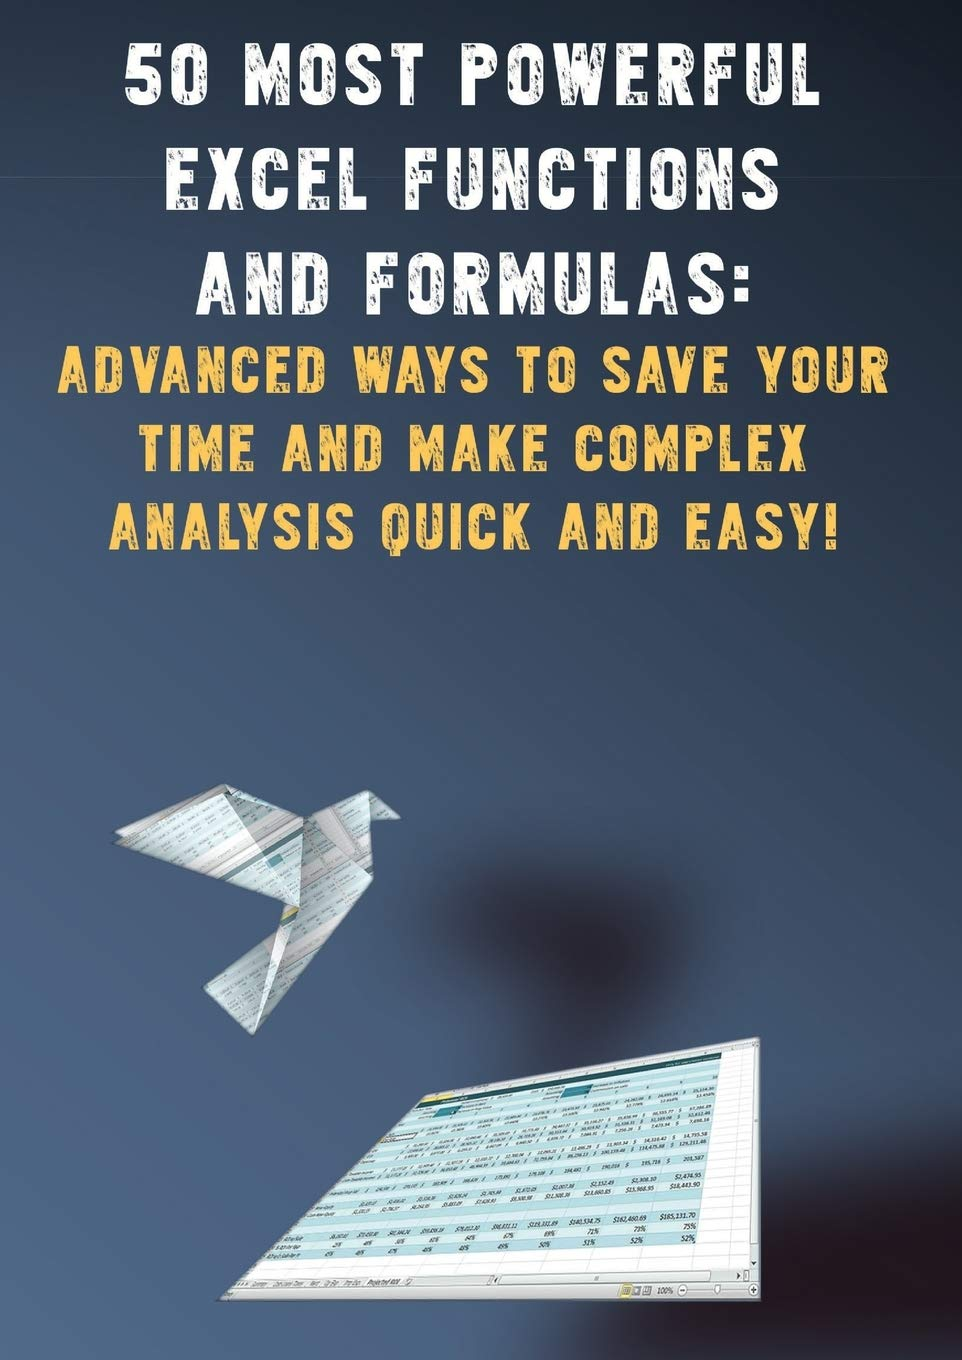 20 Most Powerful Excel Functions and Formulas Advanced Ways to ...